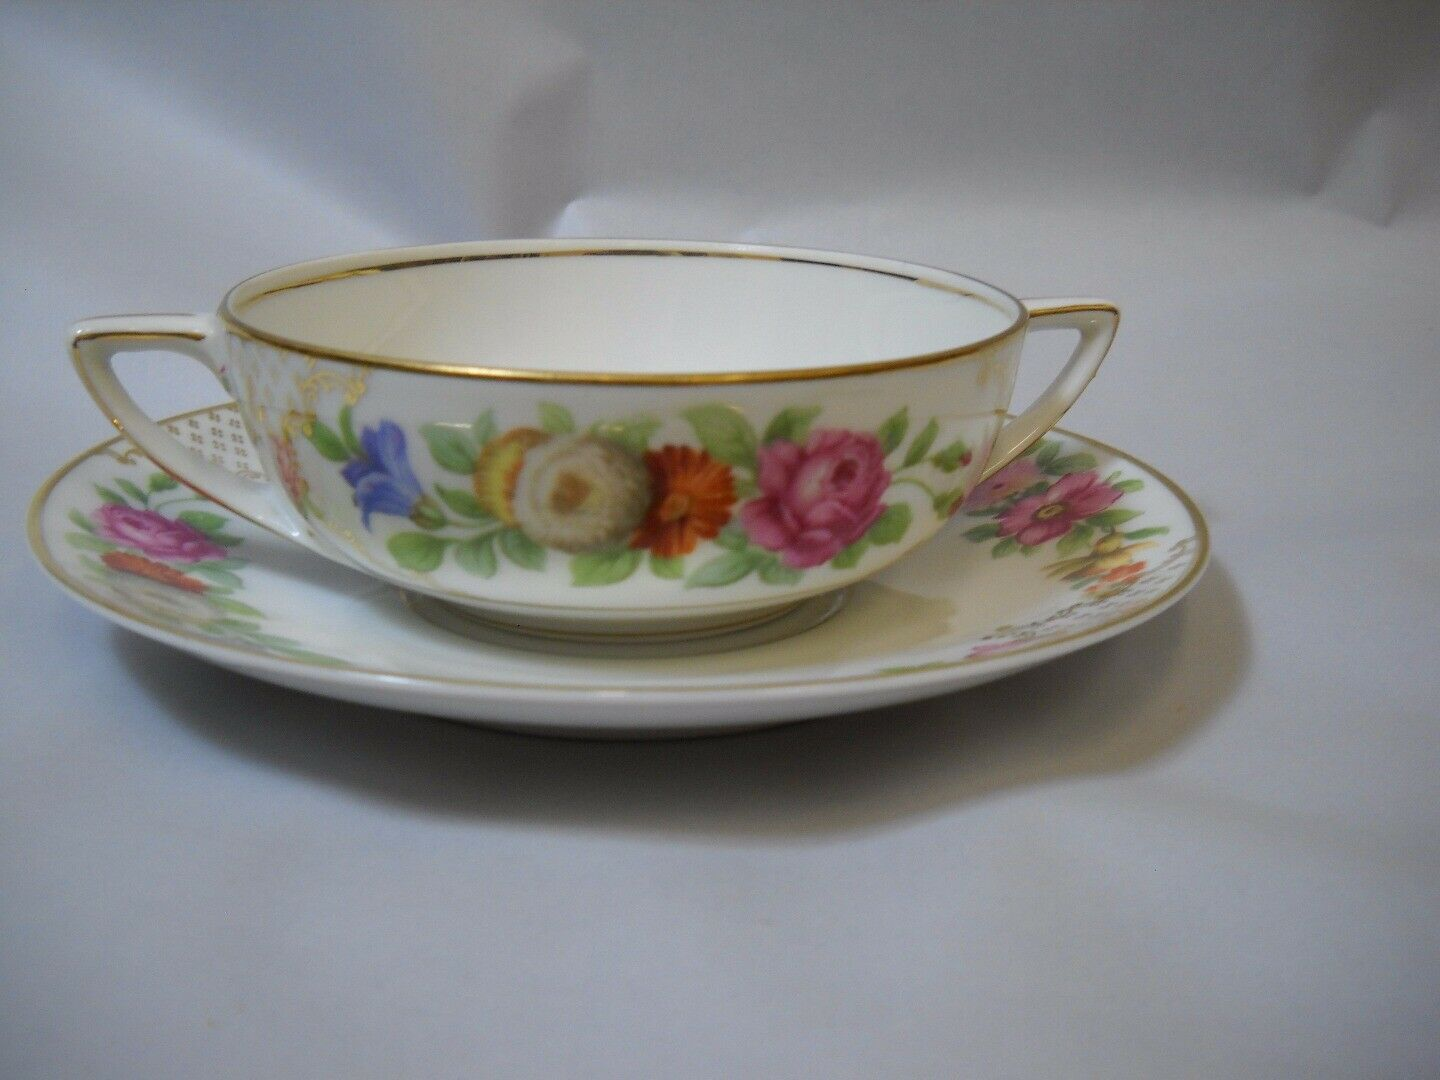 Primary image for Set of 6 BULLION bowls and PLATES set from ROSENTHALE China